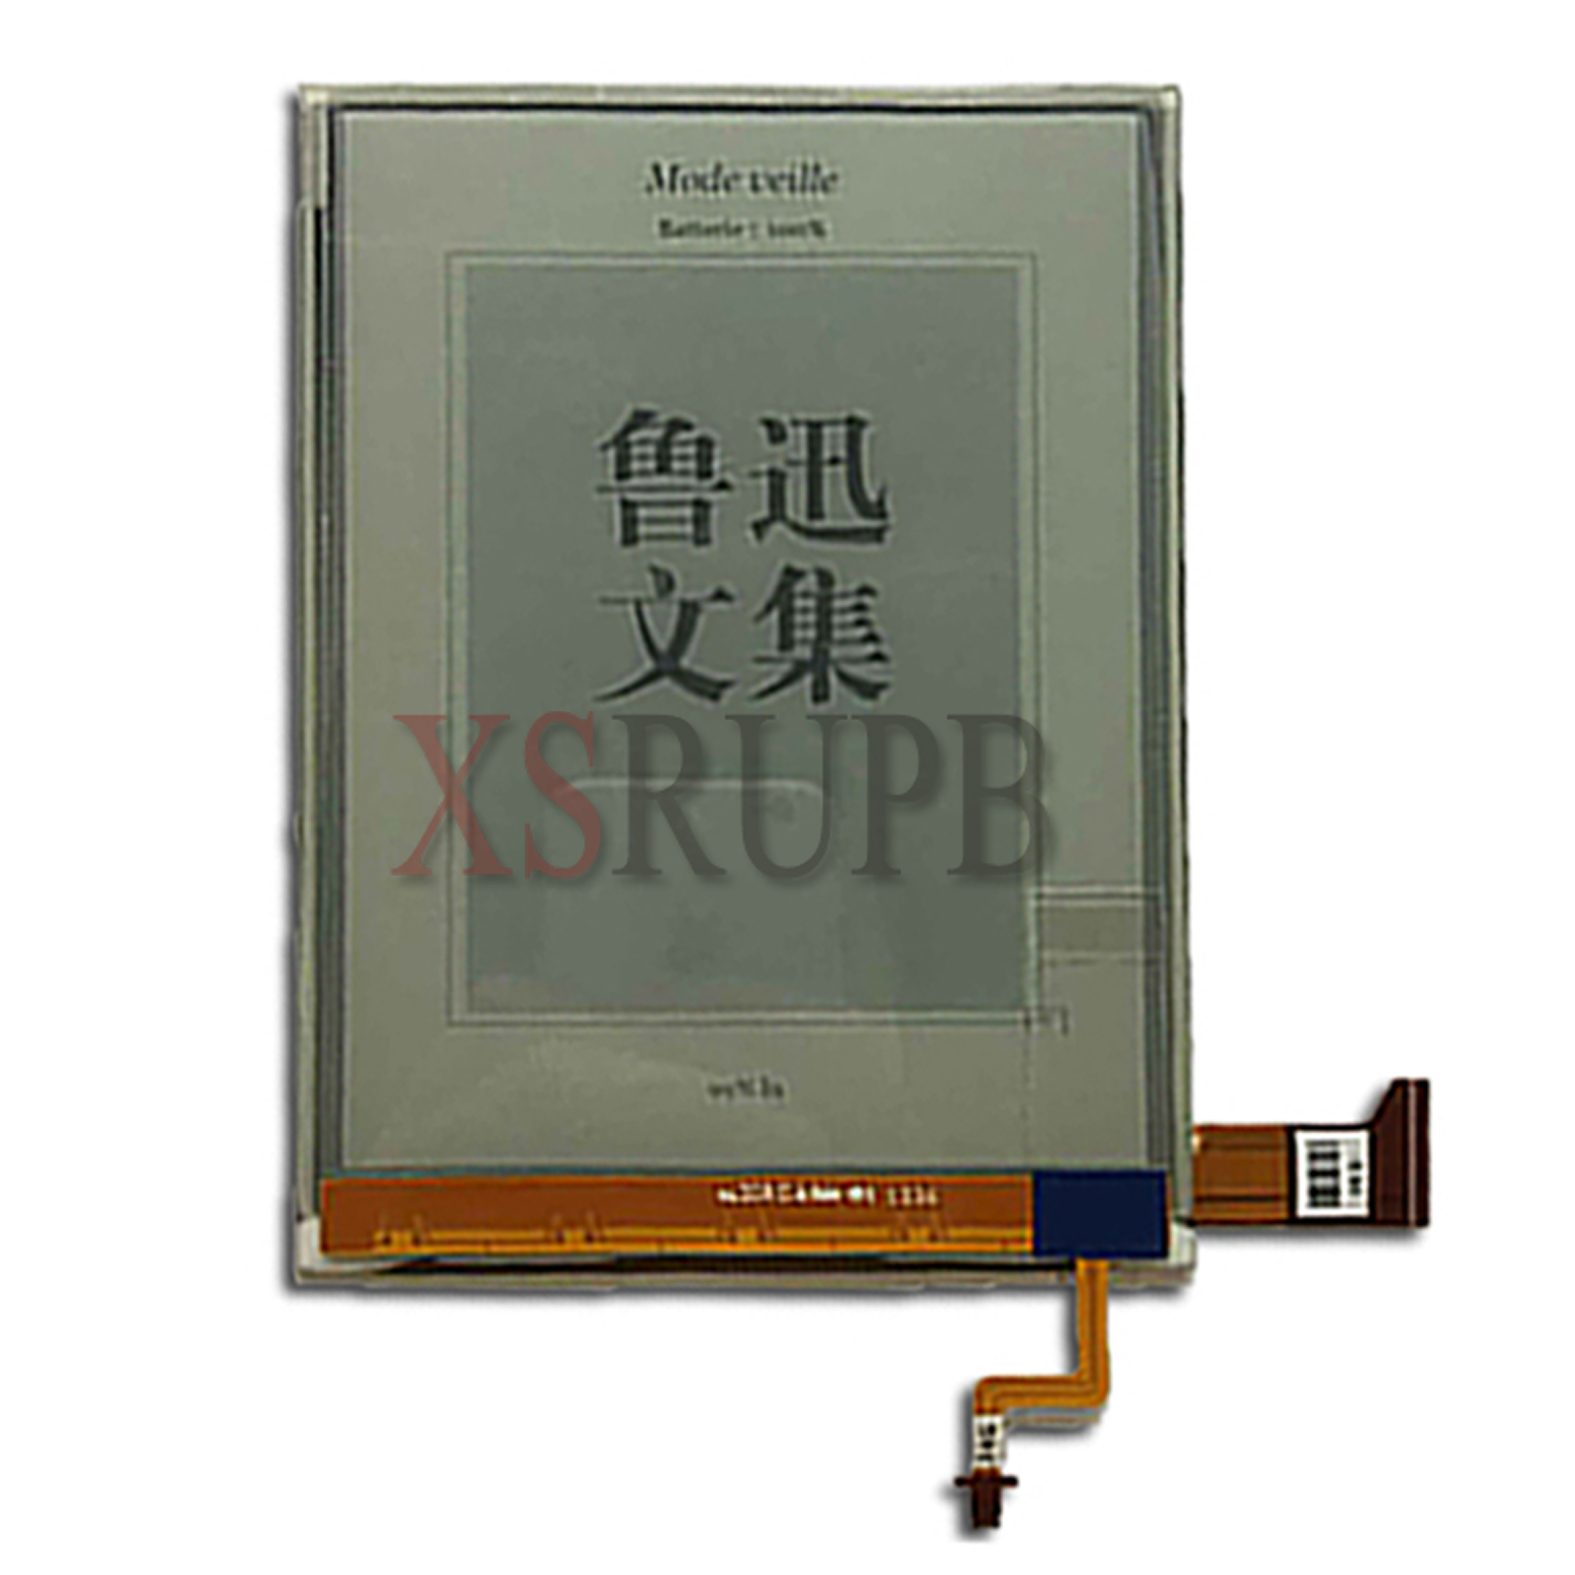 NEW Original E Ink Pearl HD Display for Kobo Glo Model N613 E-book Erader E-Ink LCD Screen Glass Panel Ebook replacement 6 e ink ed060xg1 lf t1 11 ed060xg1 768 1024 lcd screen screen for kobo glo n613 reader ebook ereader lcd display